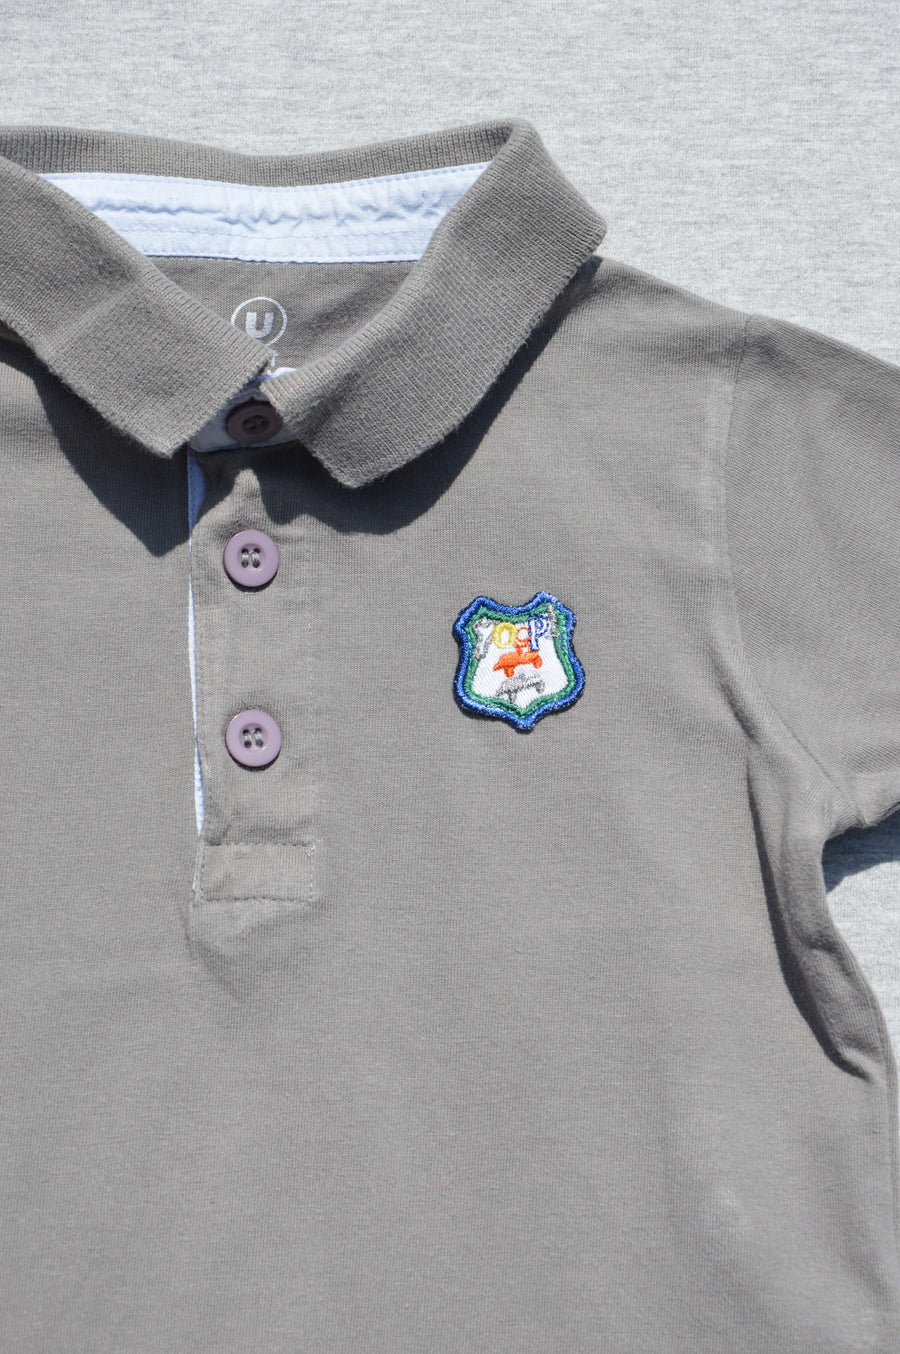 Tout Petits - nearly new - sage polo shirt, size 12-18m